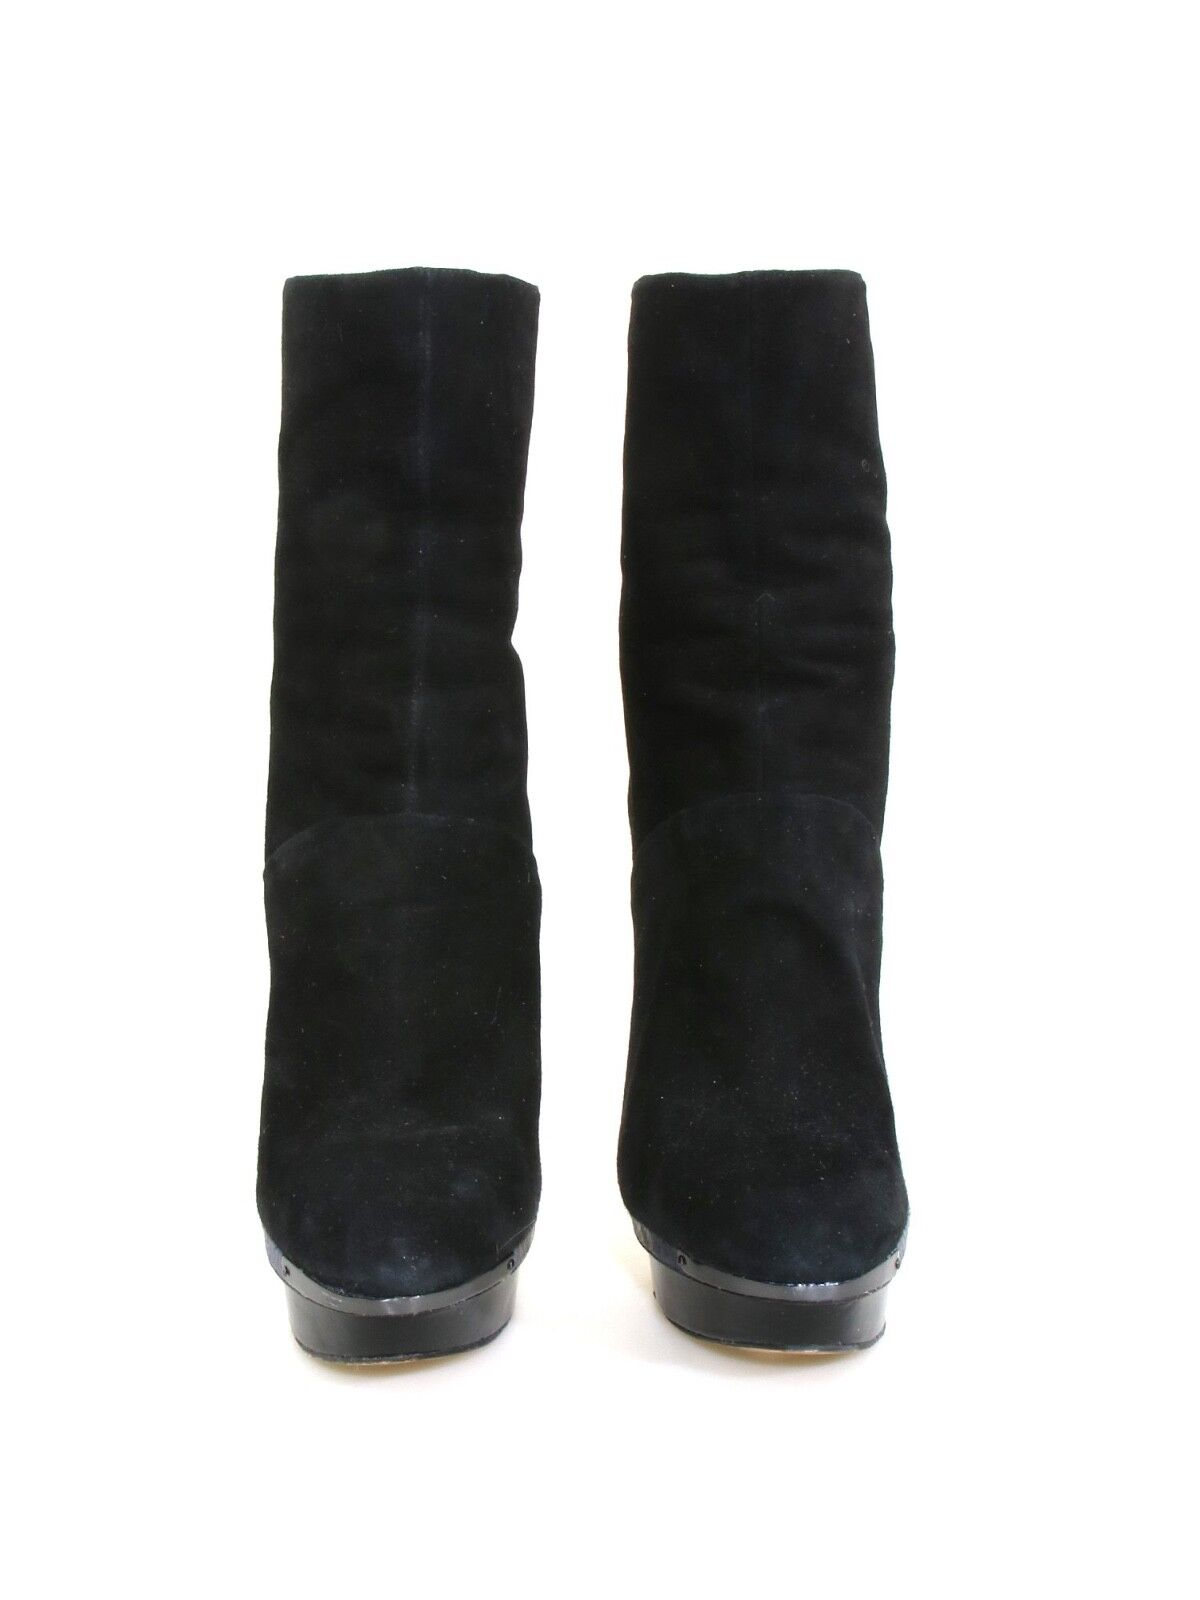 BRIAN BRIAN BRIAN ATWOOD Suede Platform Boots (Size  8) 0c4cb4